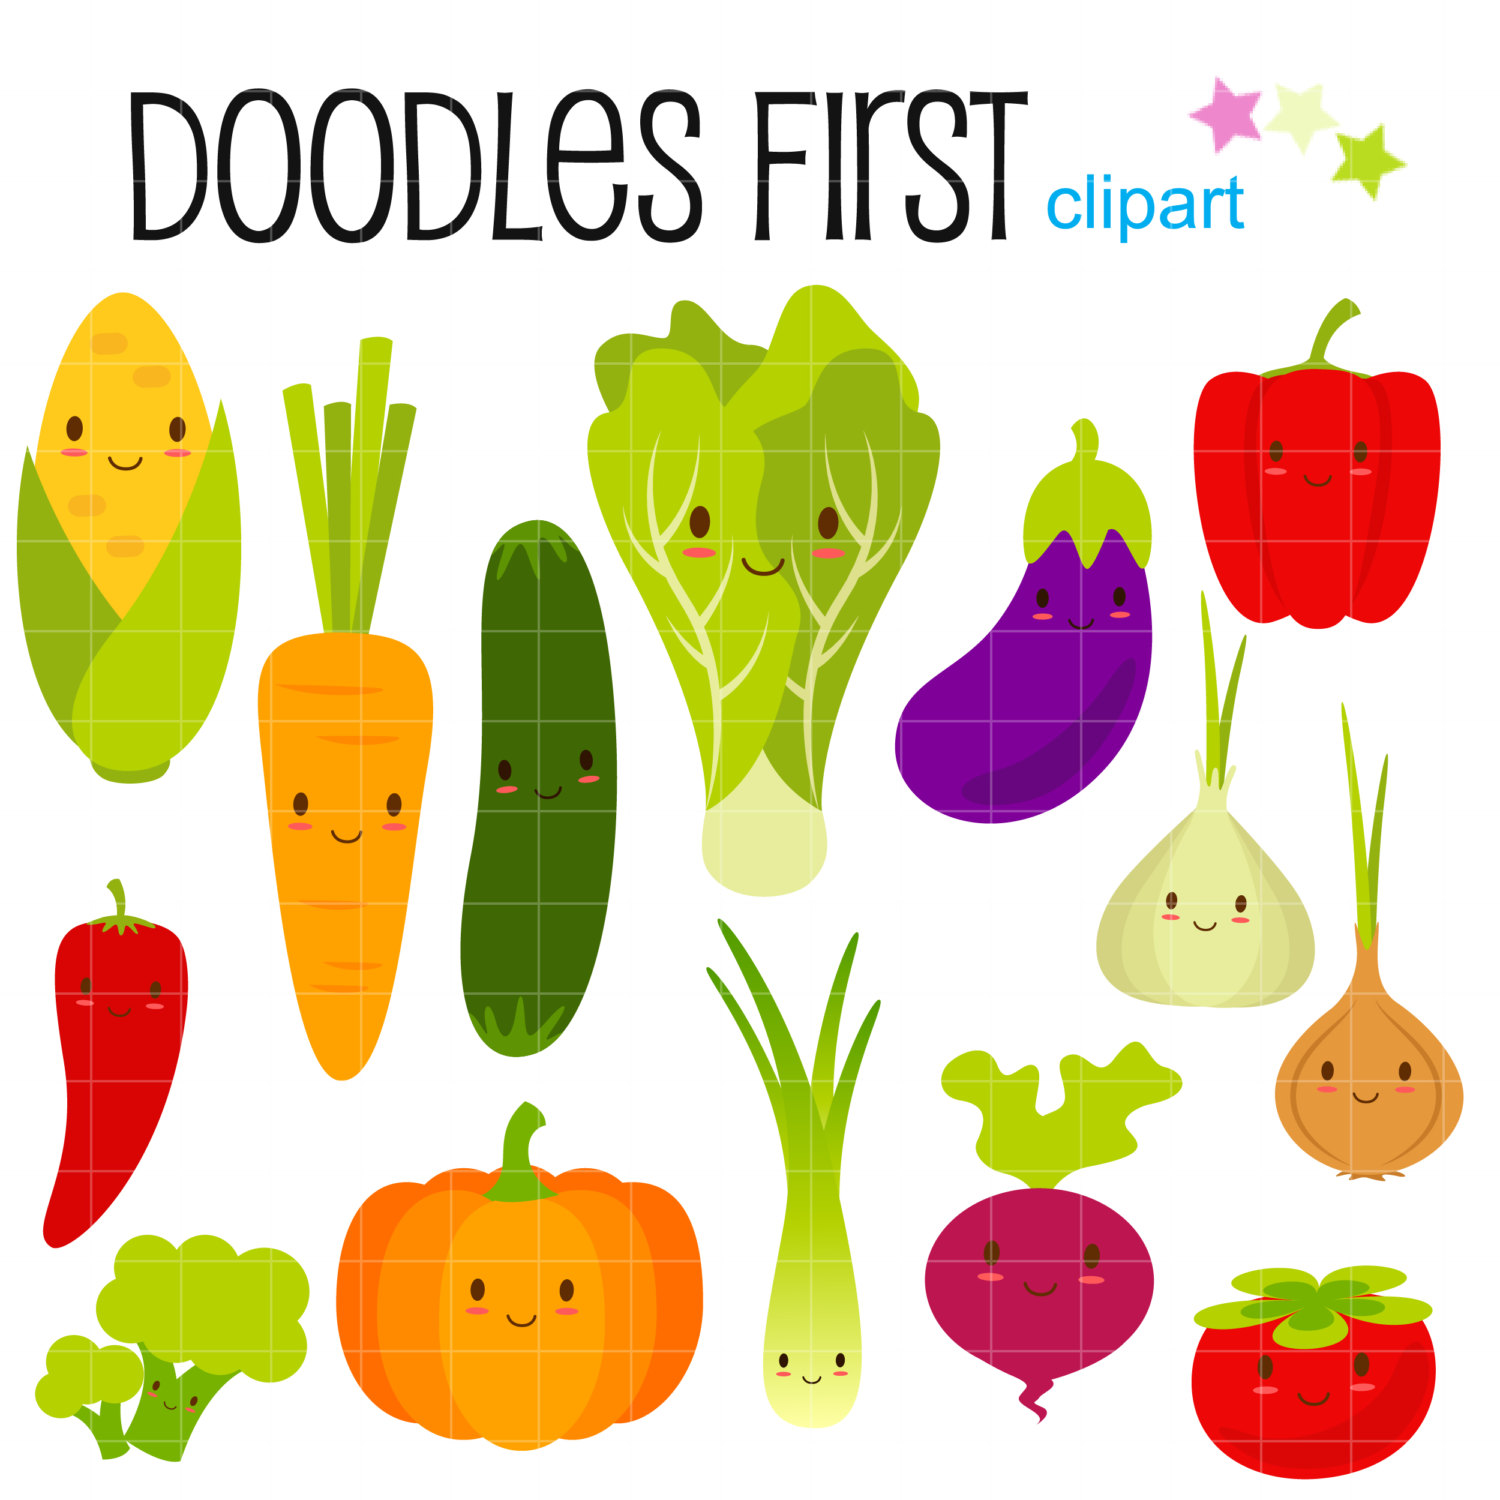 Fruits and vegetables clipart clipart.